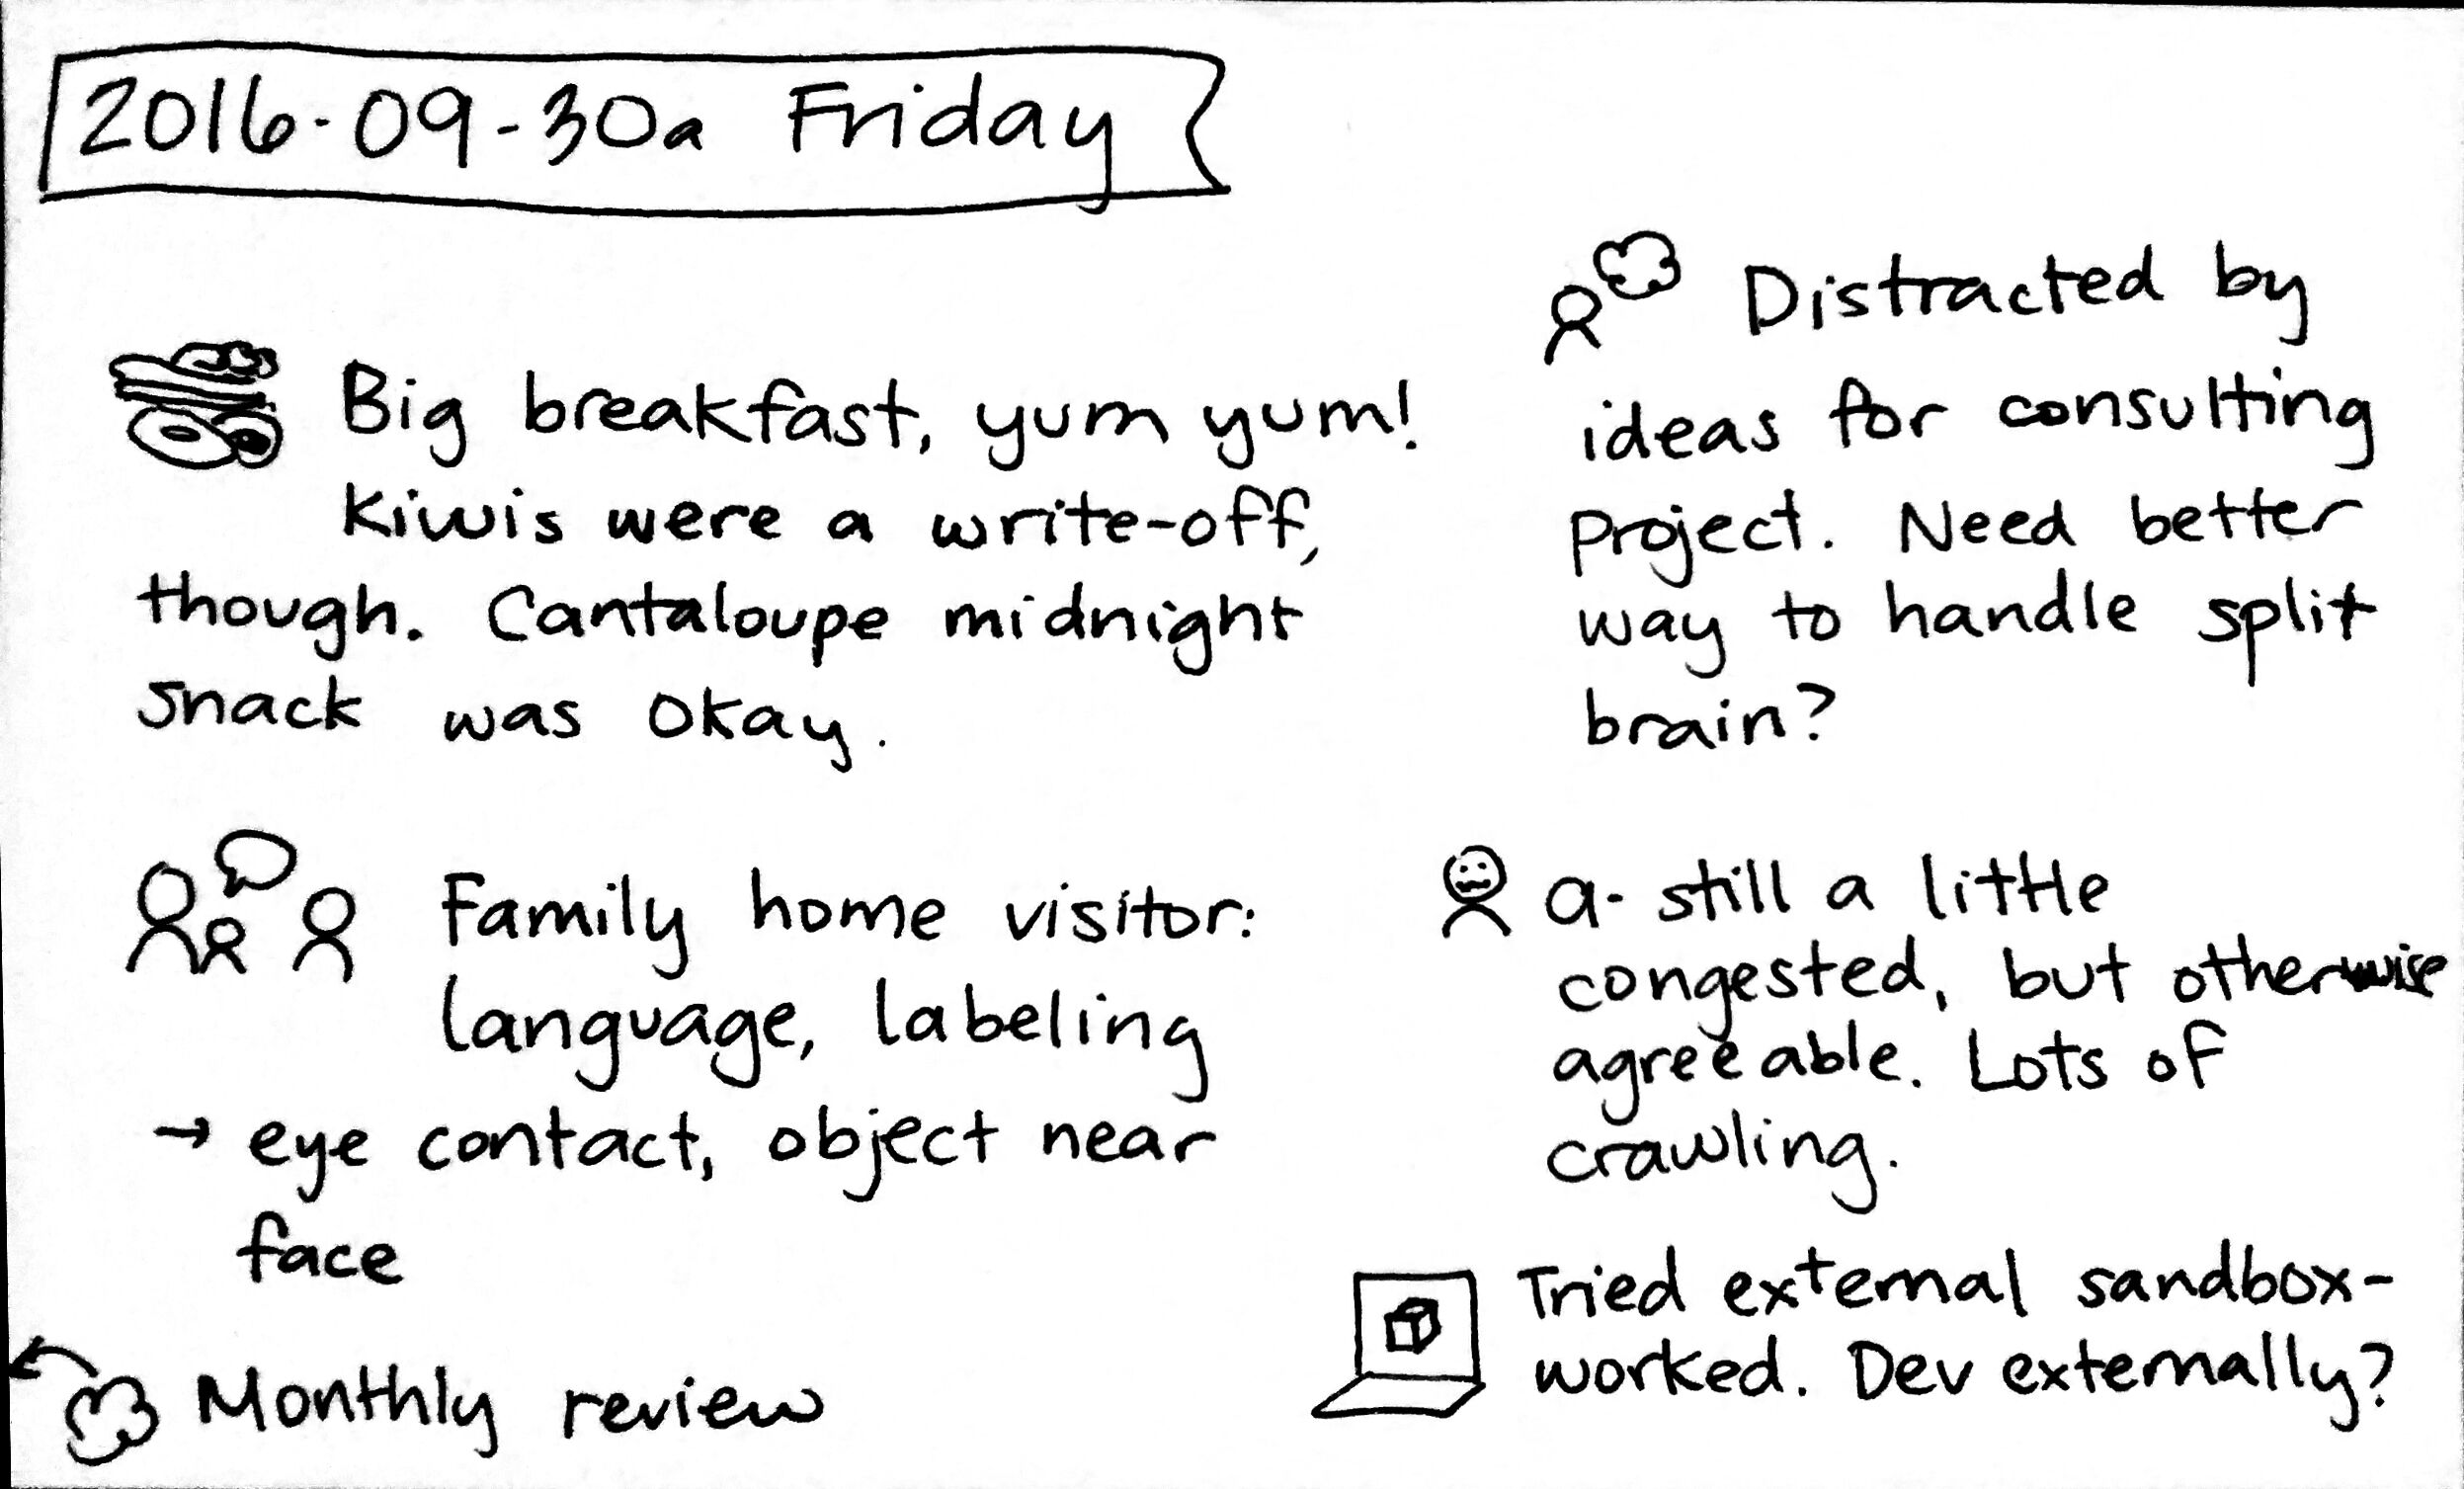 2016-09-30a Friday #daily #journal.jpg